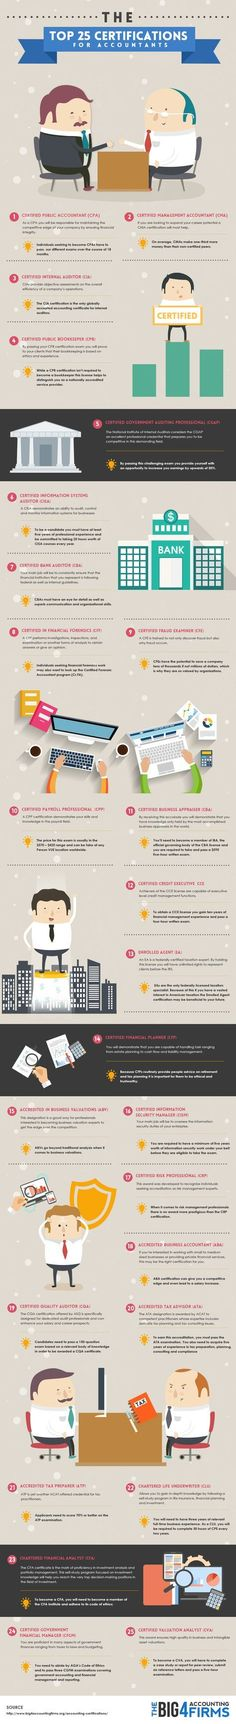 The 25 Best Certifications for Accounting Professionals #infographic #Education #Career